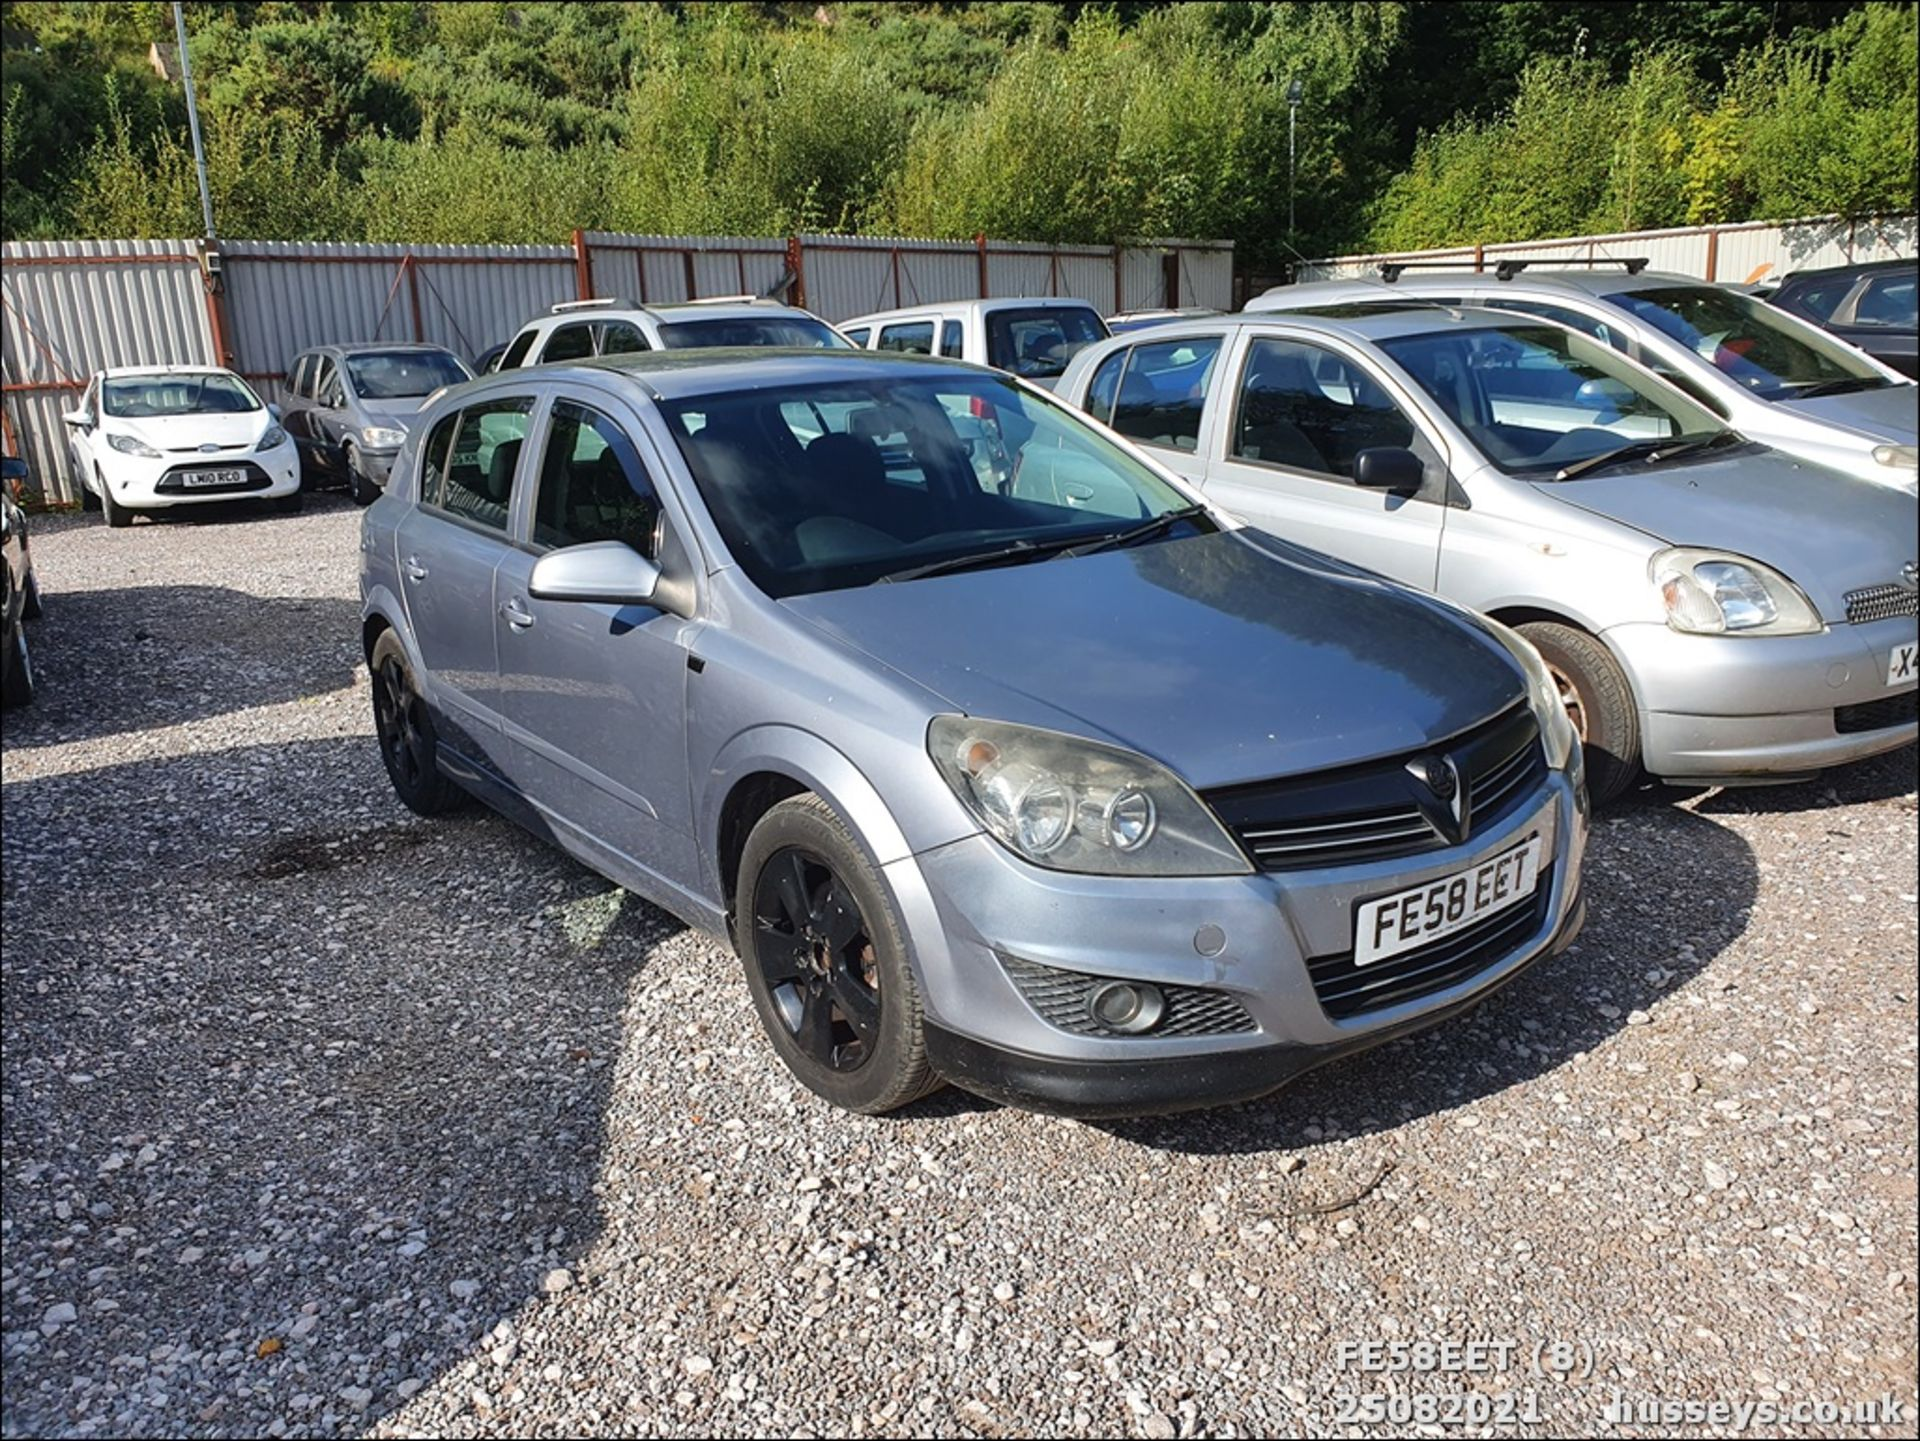 08/58 VAUXHALL ASTRA CLUB CDTI 100 - 1686cc 5dr Hatchback (Silver, 115k) - Image 8 of 15